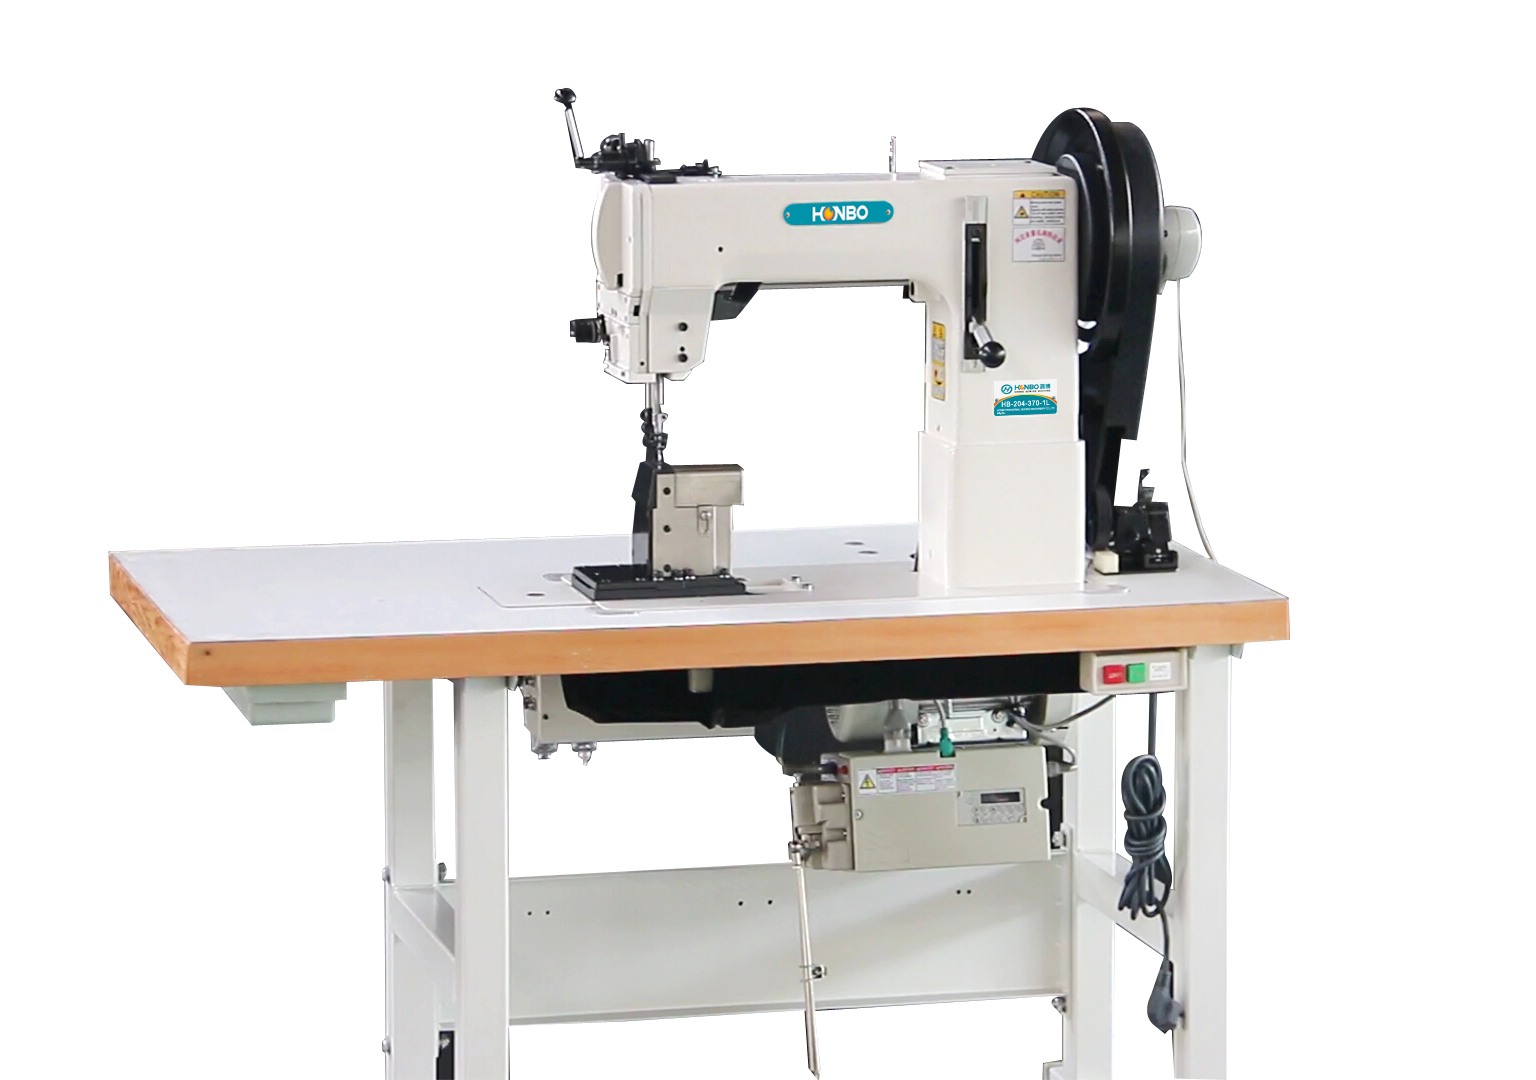 HB-204-370-1L Industrial Strong Feeding thick material Post bed Sewing Machine